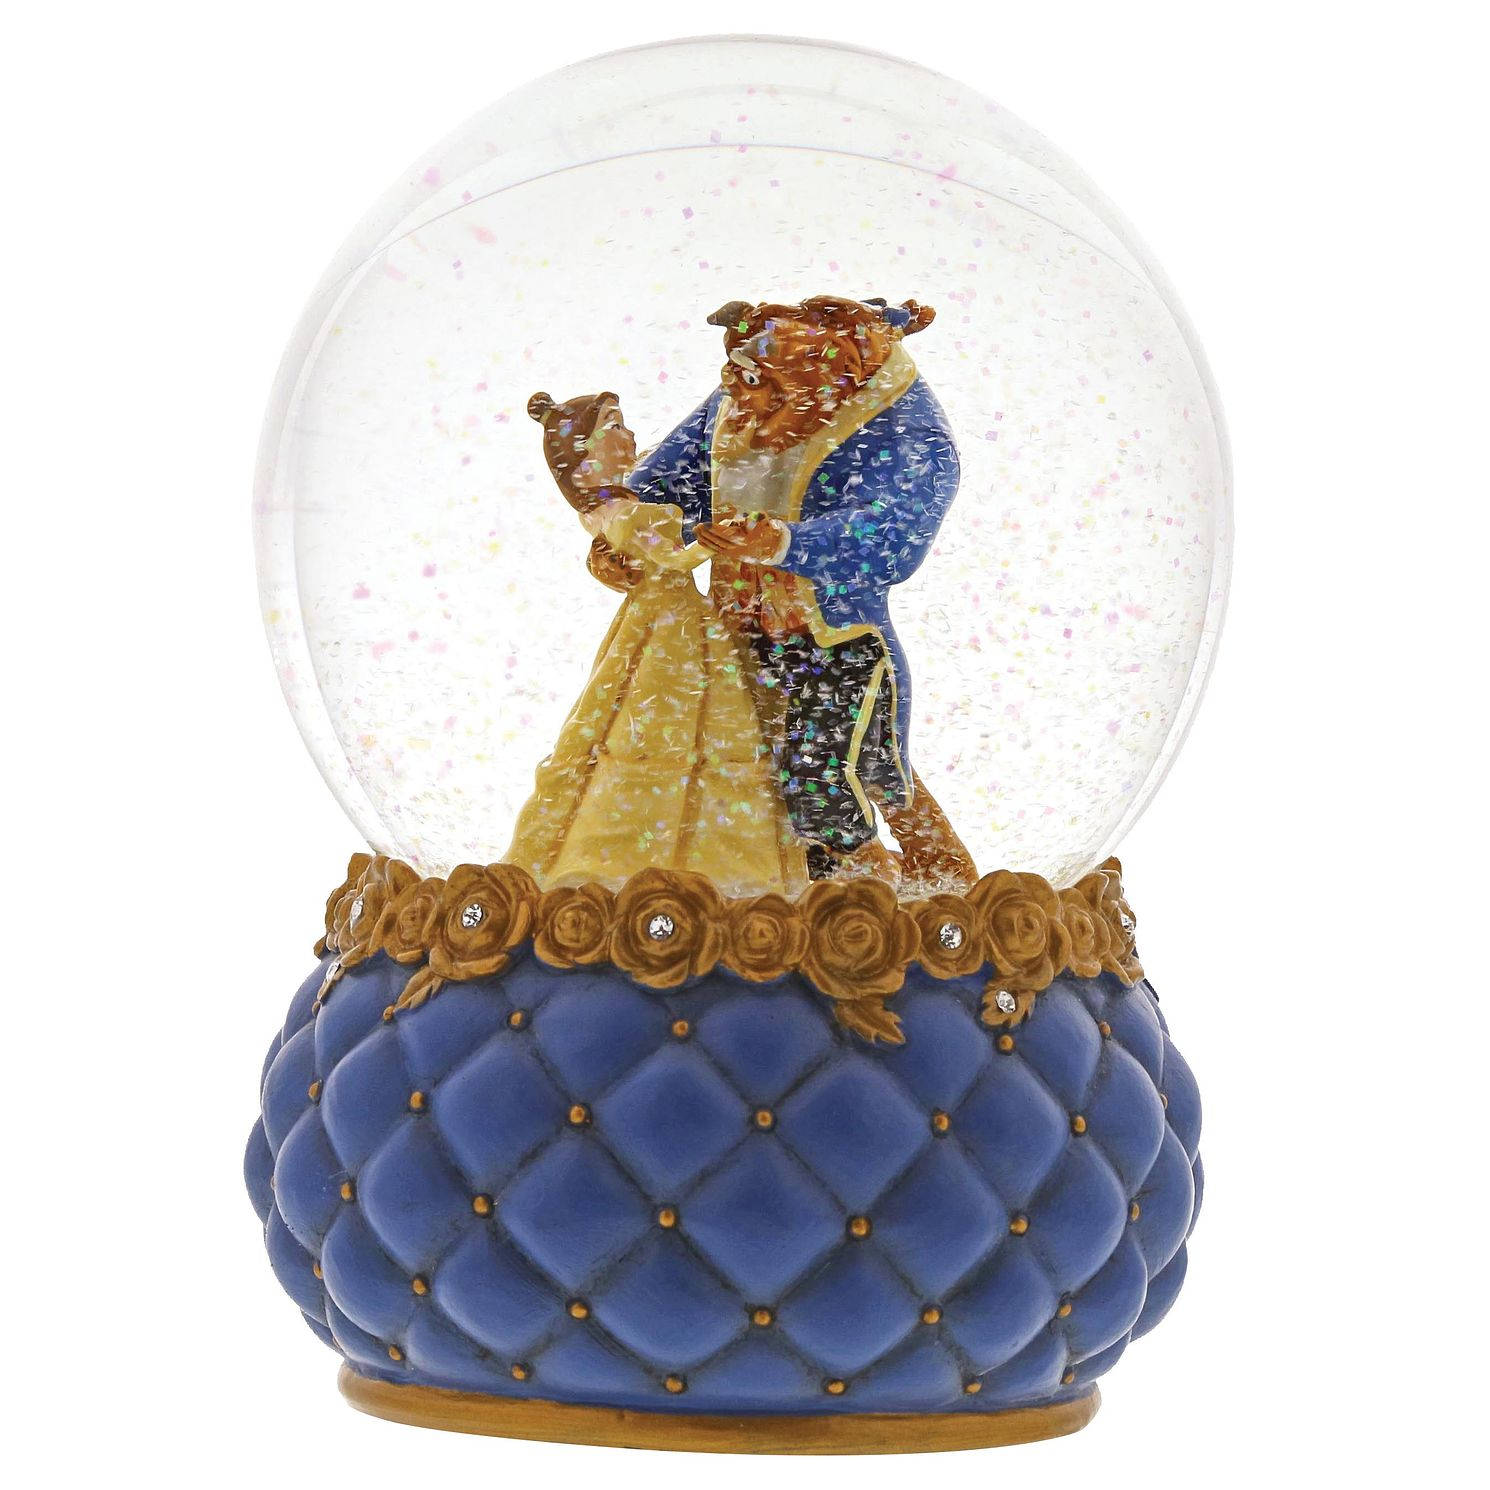 Disney Showcase Beauty & The Beast Waterball Globe Ornament - Product number 9658661